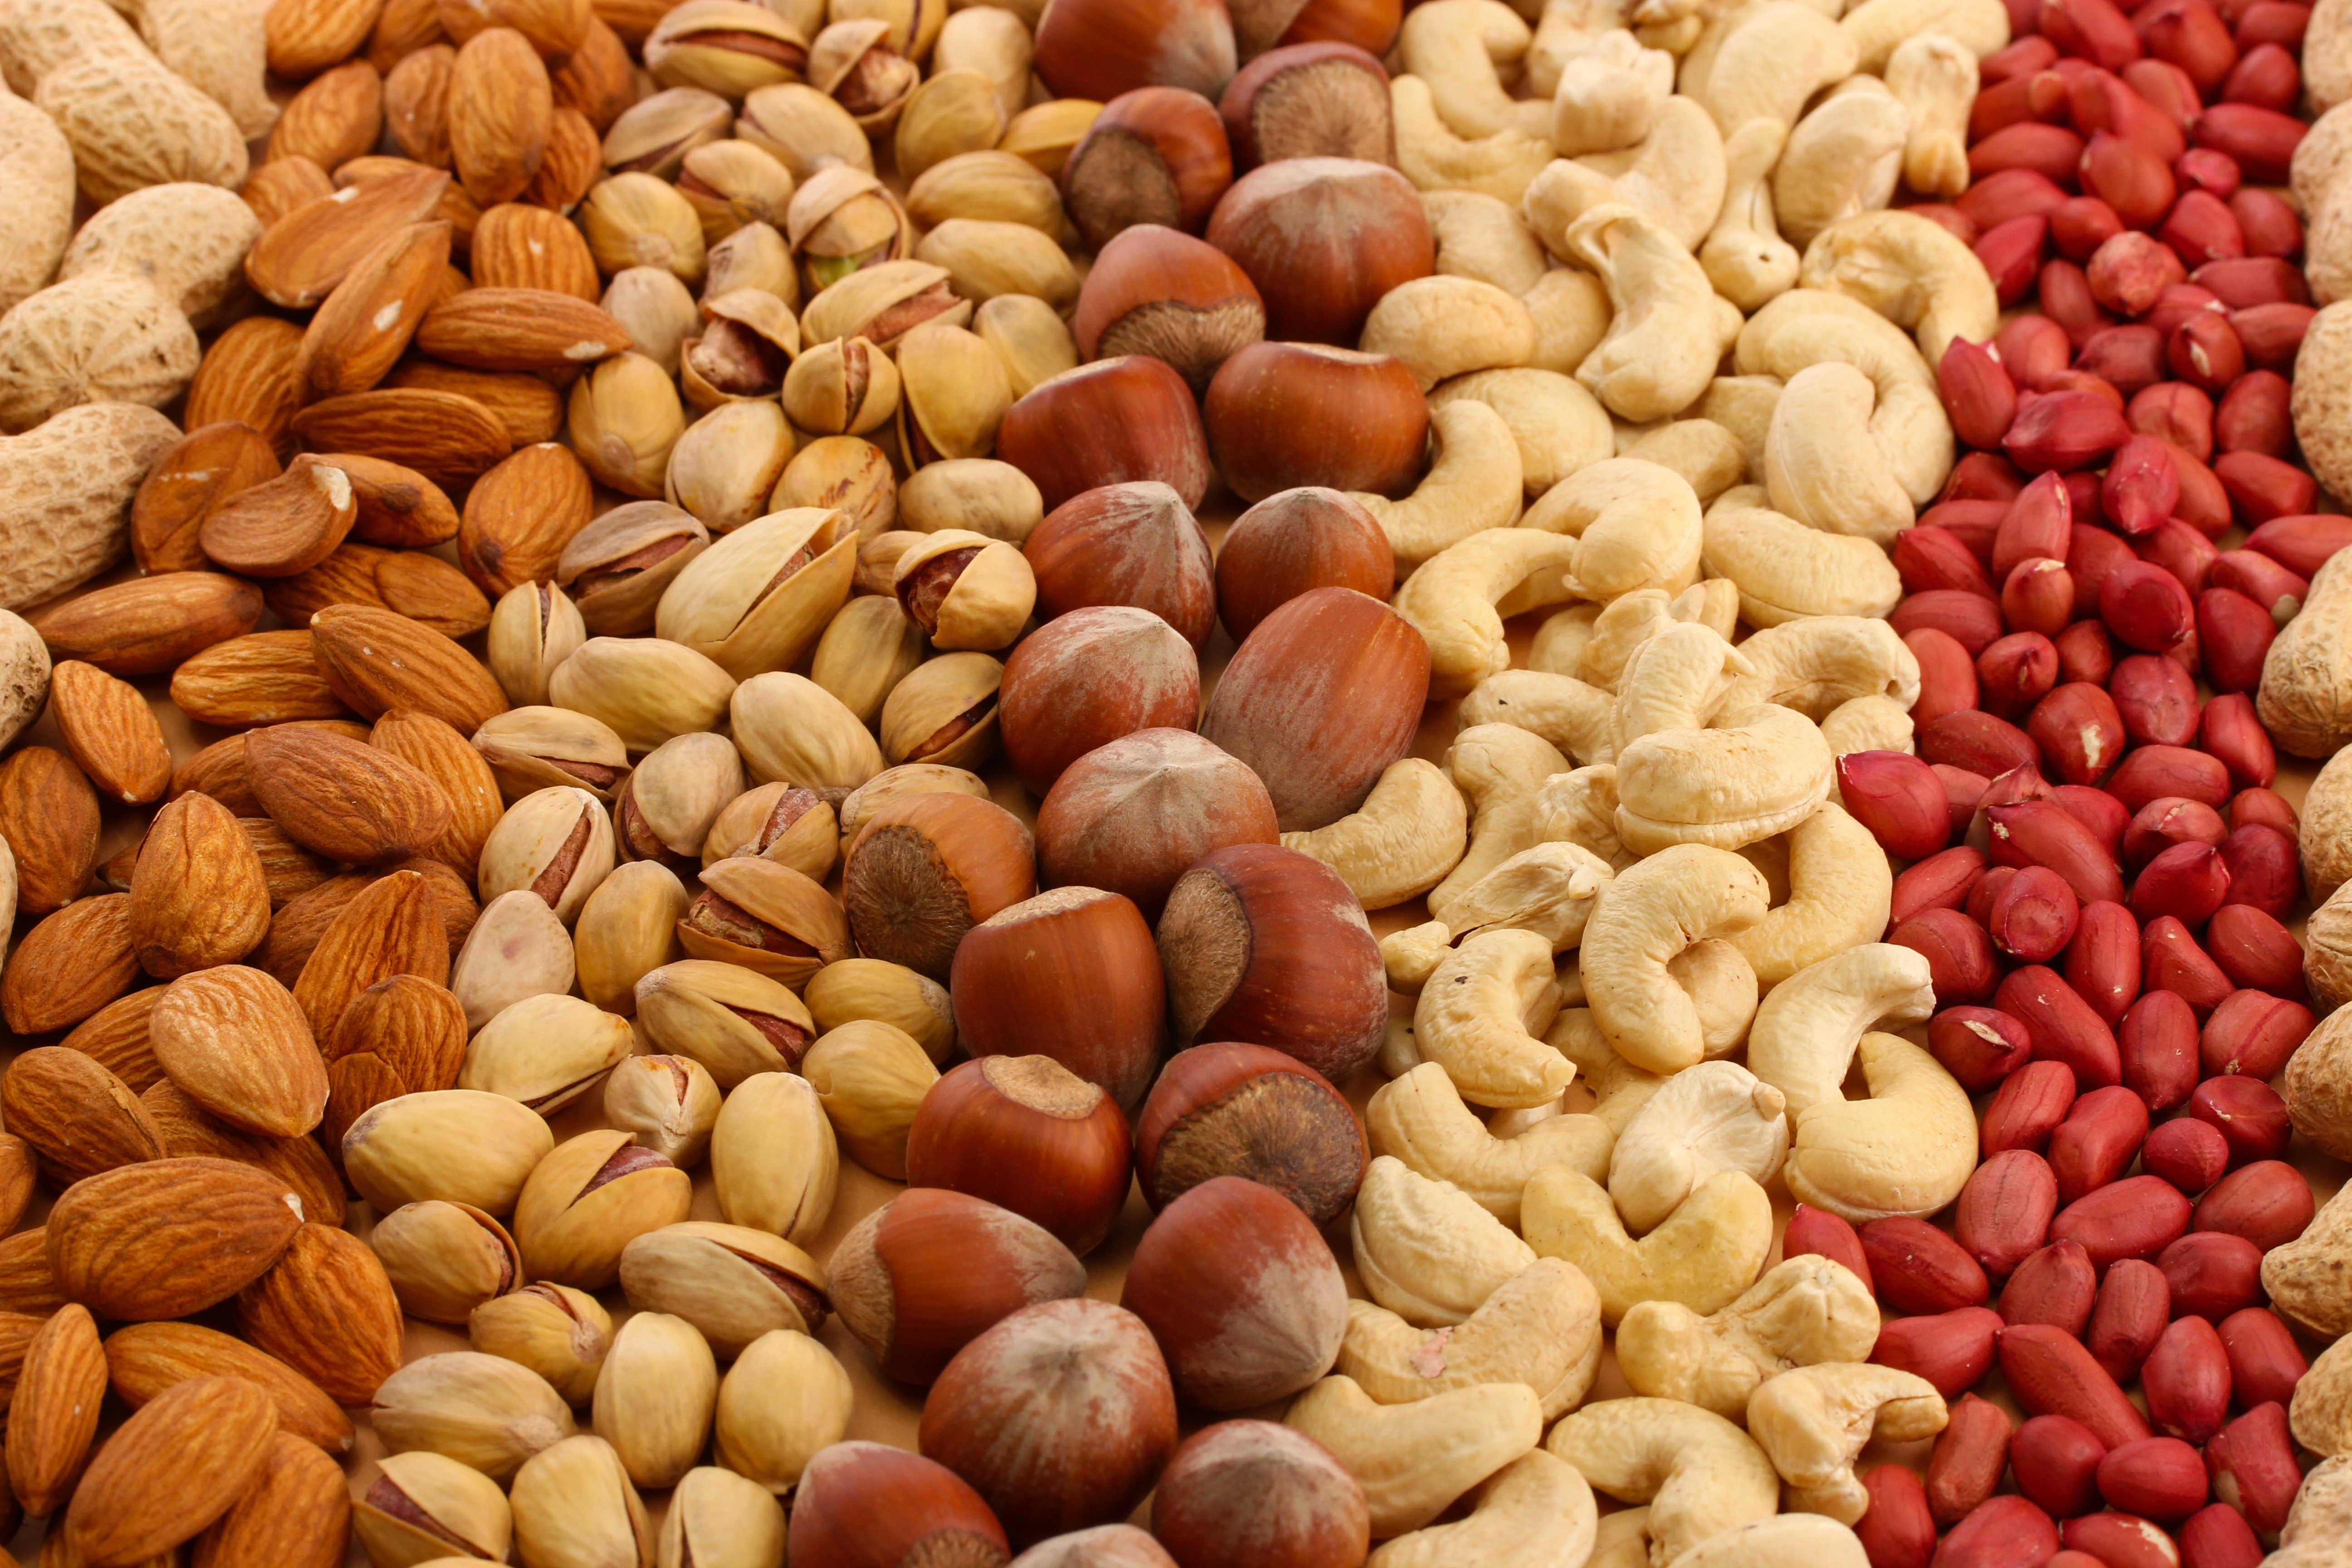 A Variety of Delicious Nuts